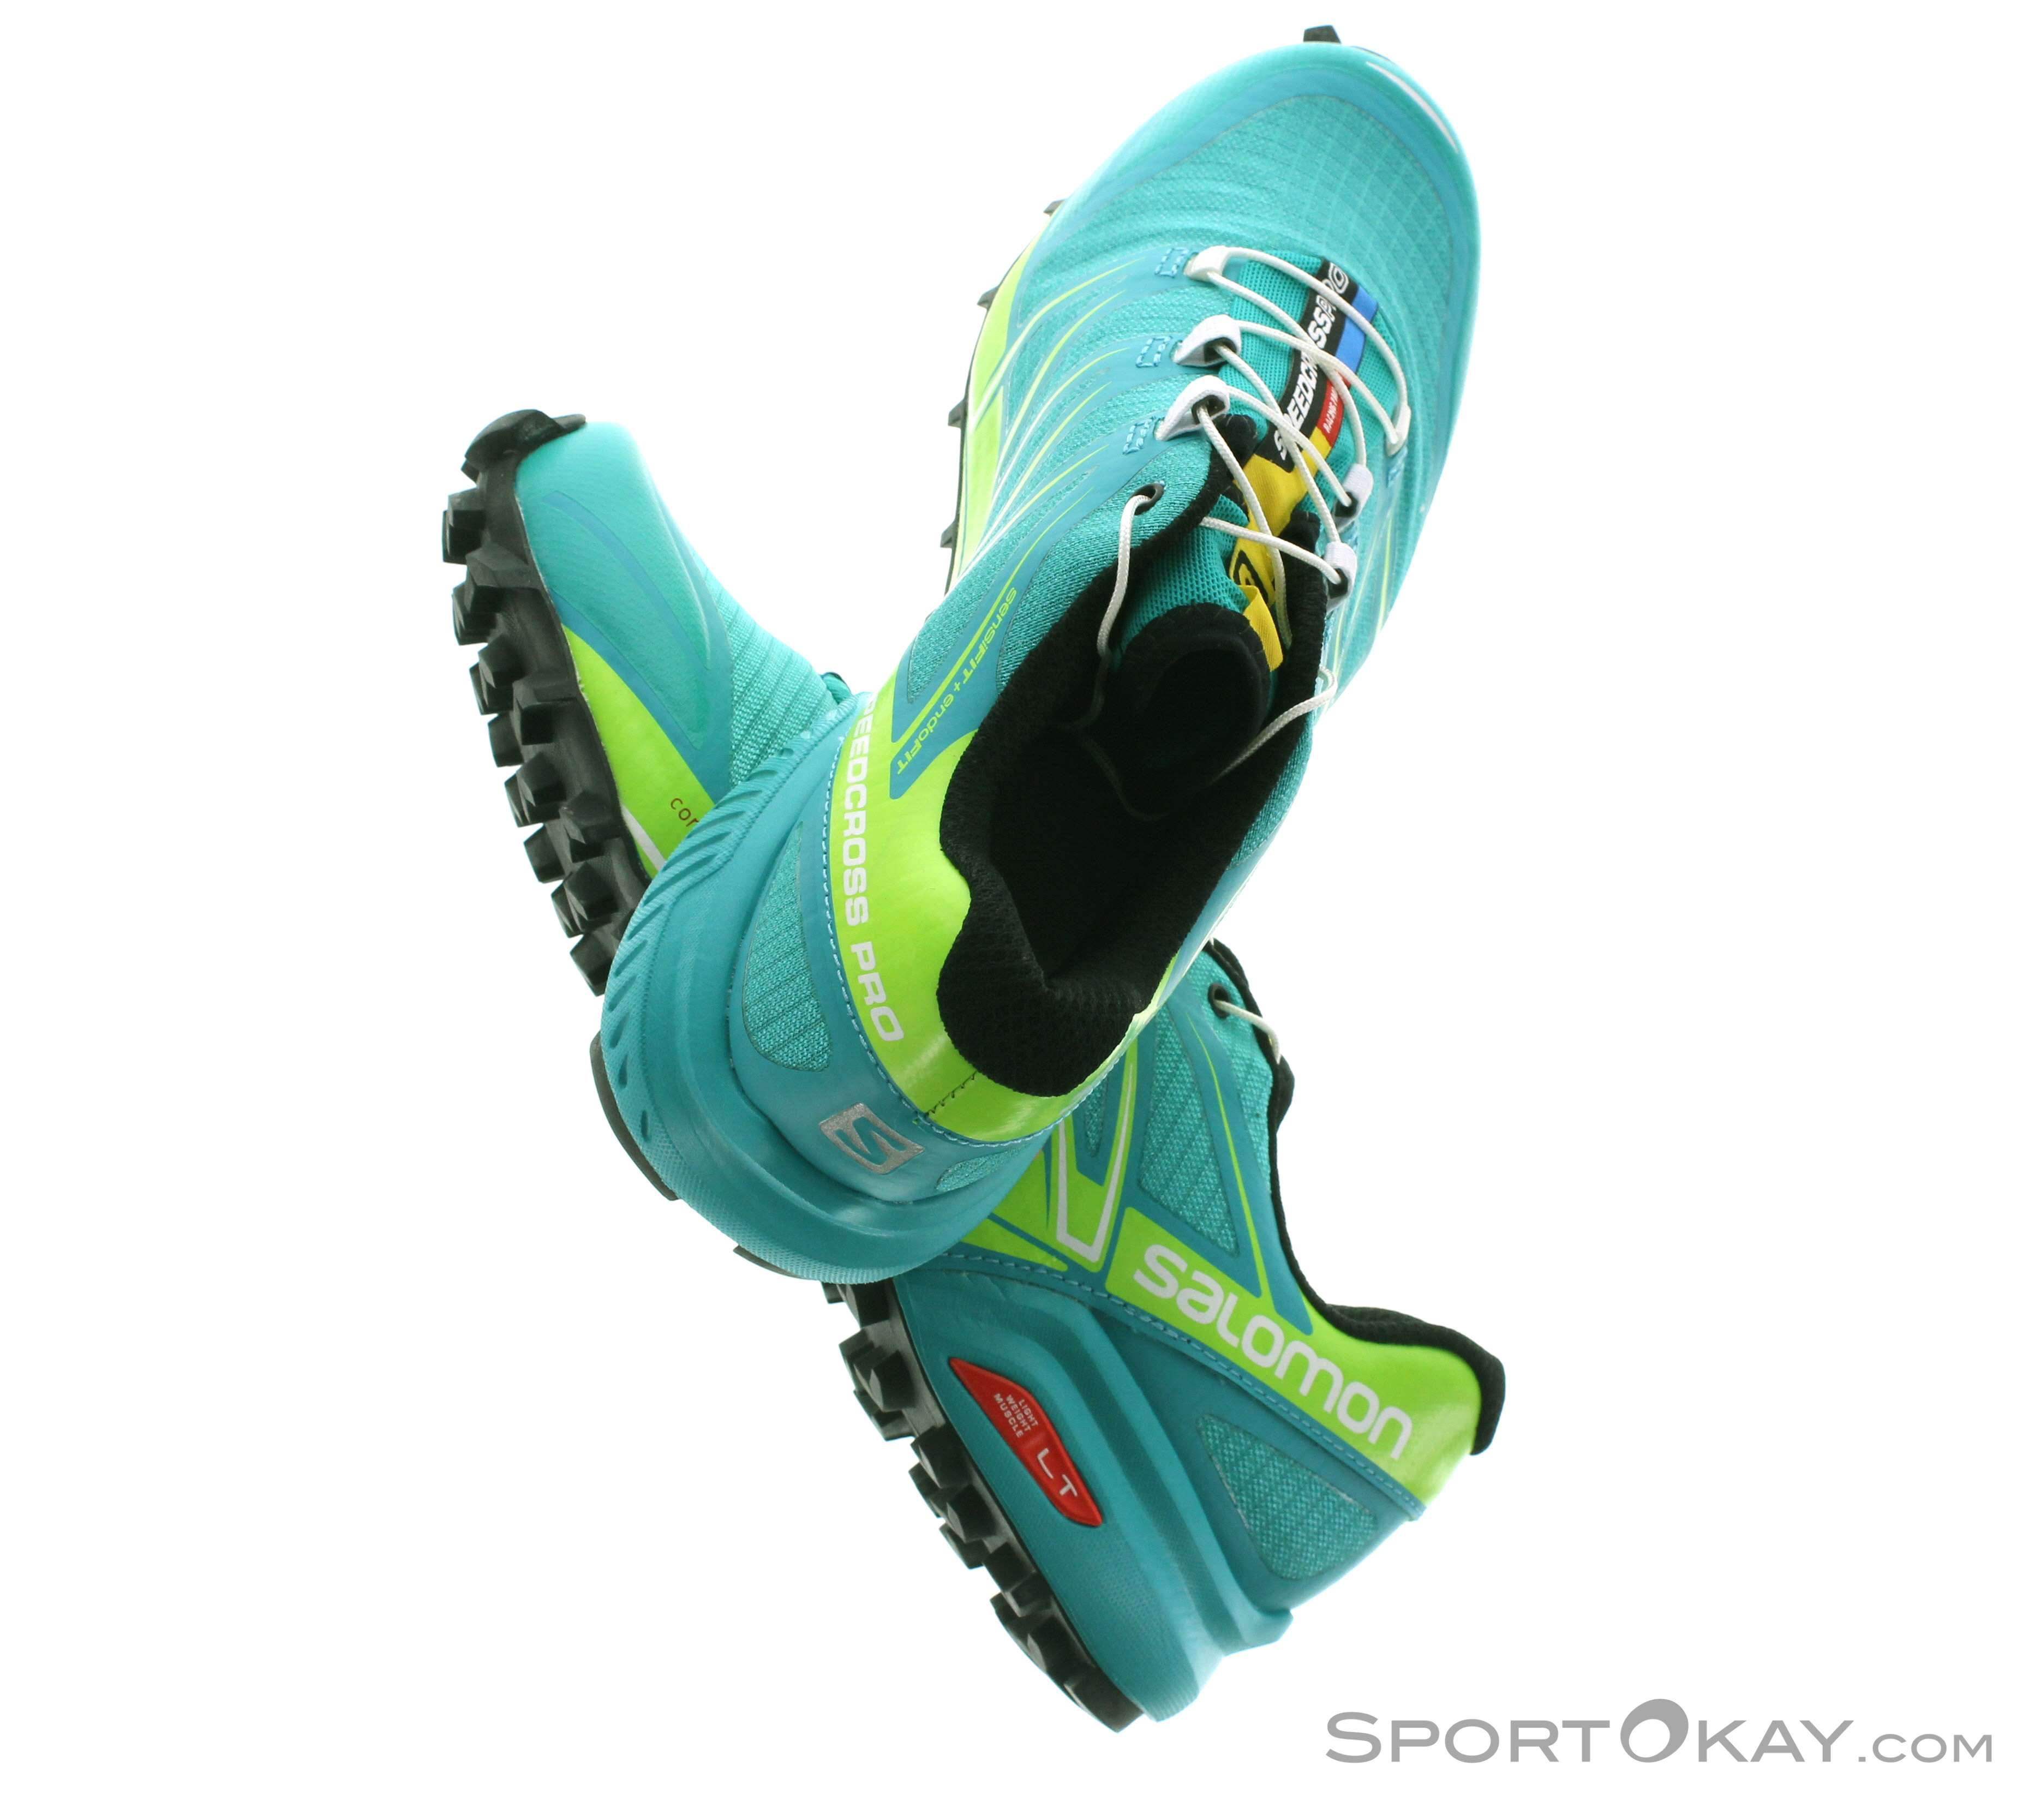 Salomon Salomon Speedcross 3 Pro Damen Traillaufschuhe